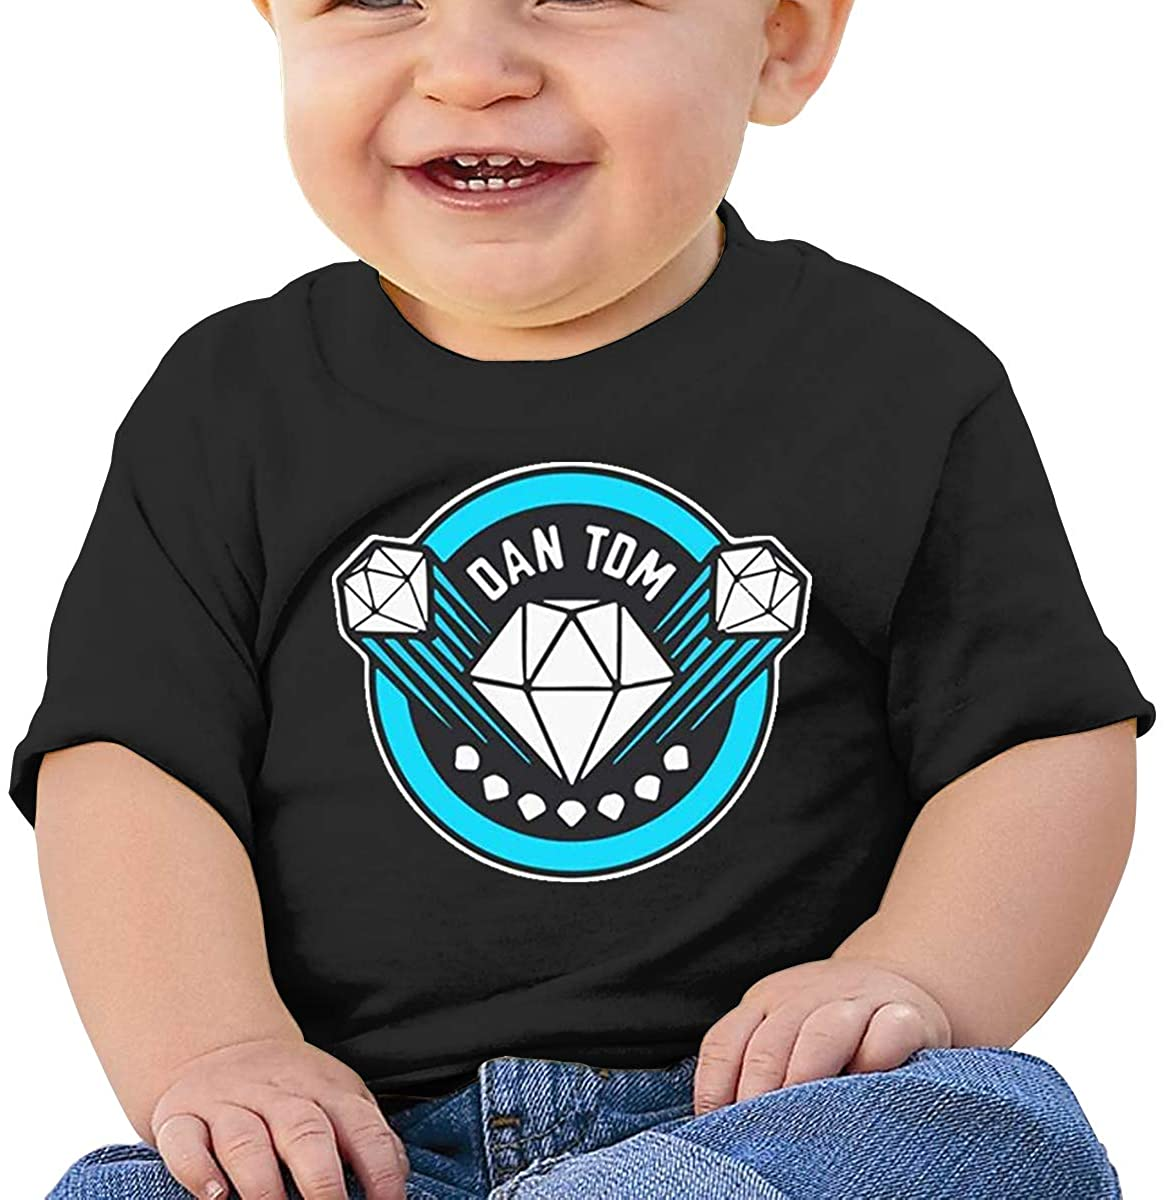 6-24 Months Boy and Girl Baby Short Sleeve T-Shirt Dantdm Elegant and Simple Design Black